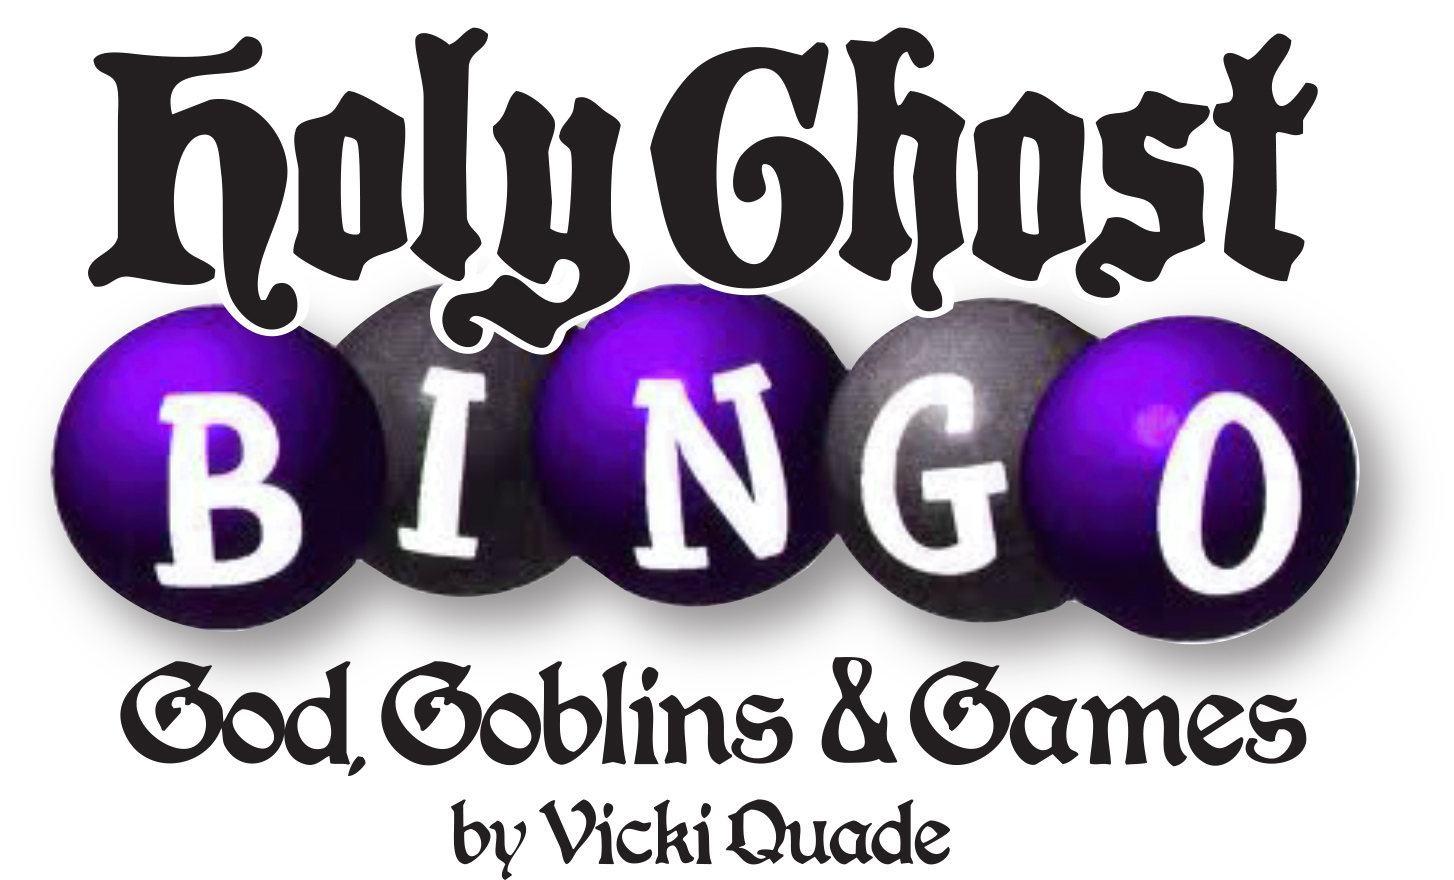 Holy Ghost Bingo: God, Goblins & Games